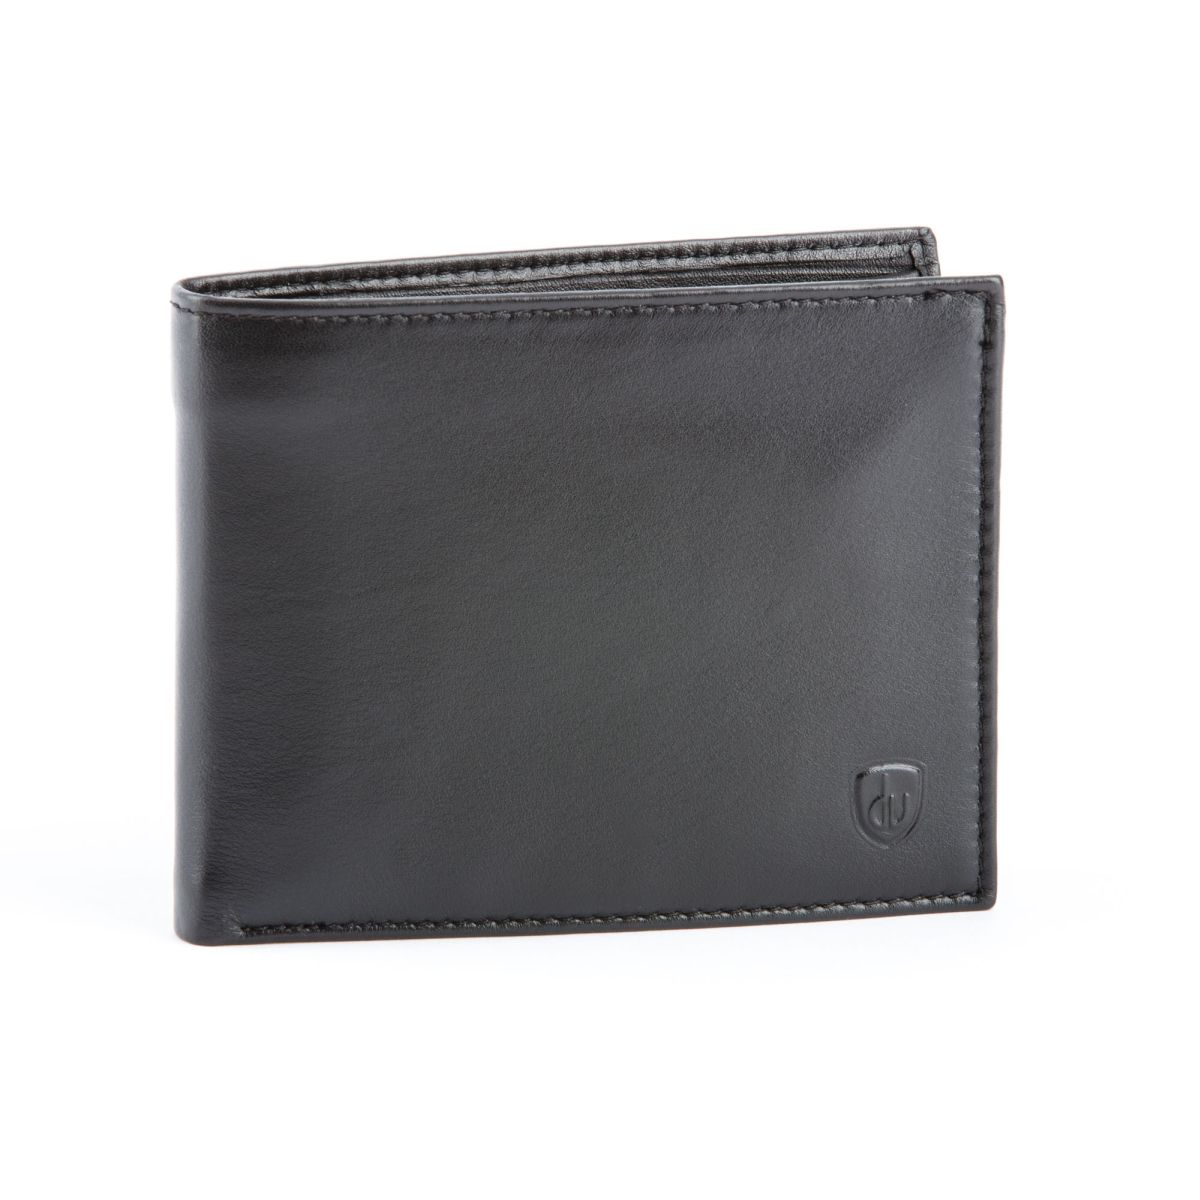 dv Leather Wallet for men with inner flap side - Black